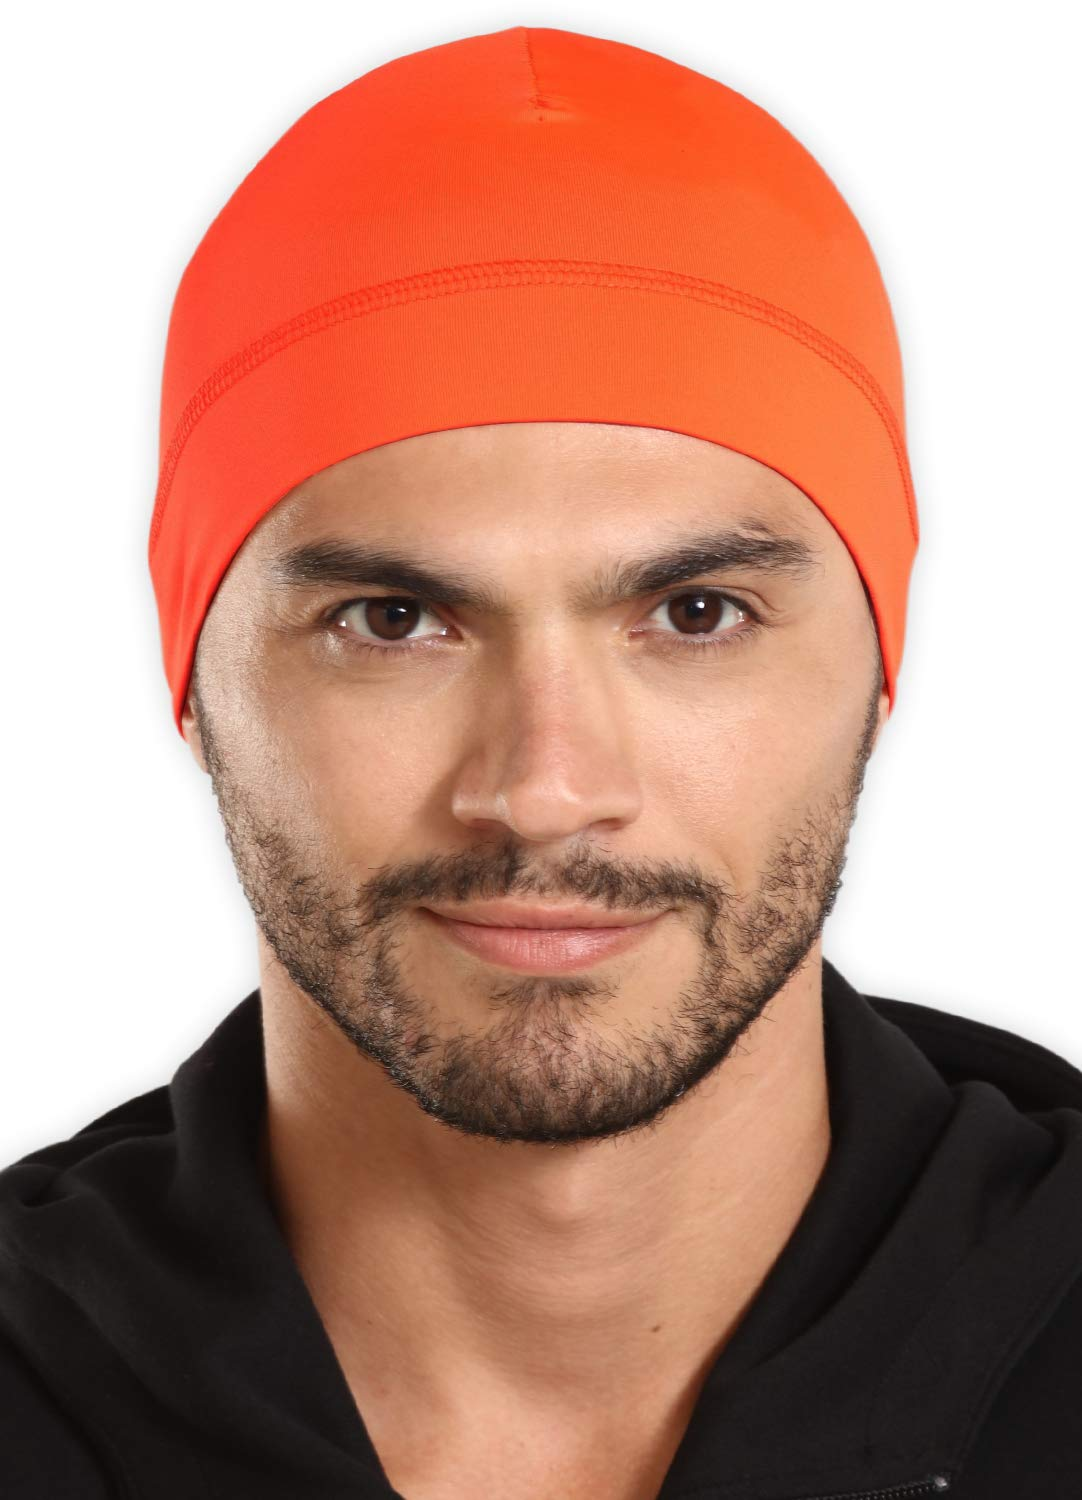 Cycling Cap /& Winter Beanie for Men /& Women OutdoorEssentials Skull Cap//Helmet Liner//Running Hat Ultimate Thermal Retention and Performance Moisture Wicking Fits Under Helmets